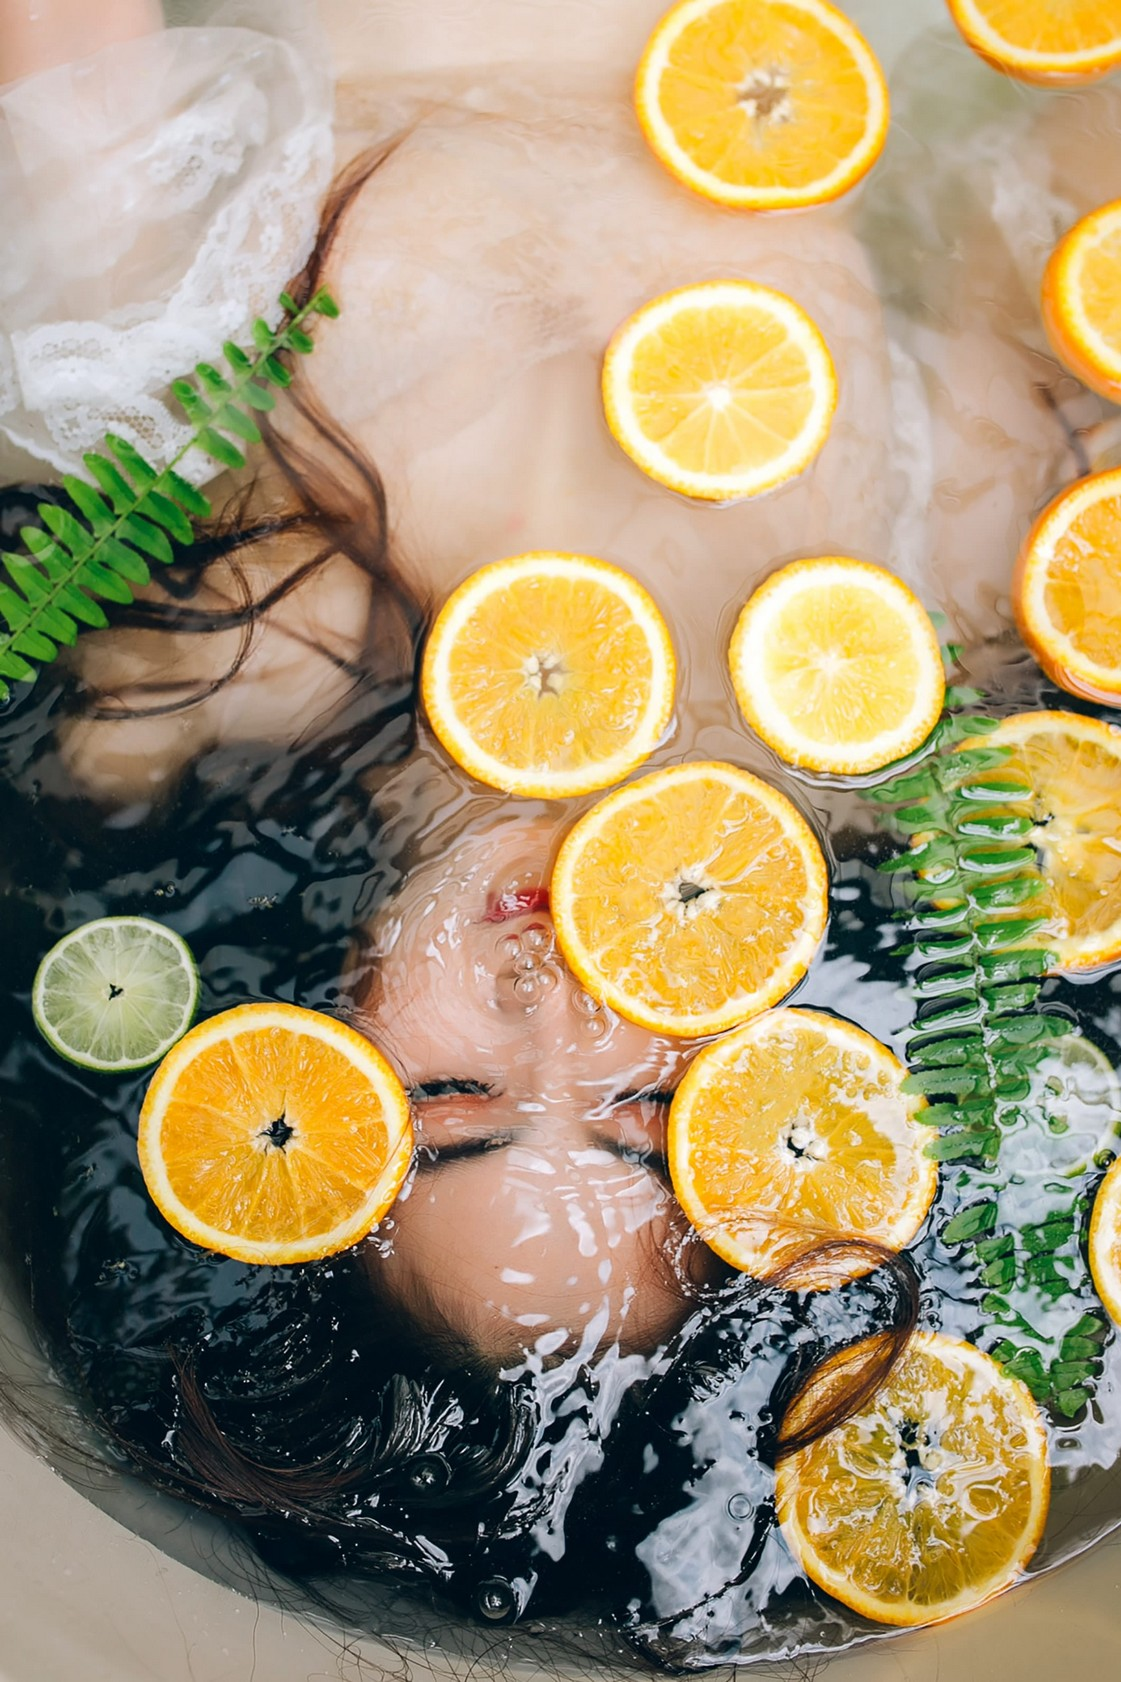 drinks: woman lying in water with lemon slices floating above her face.